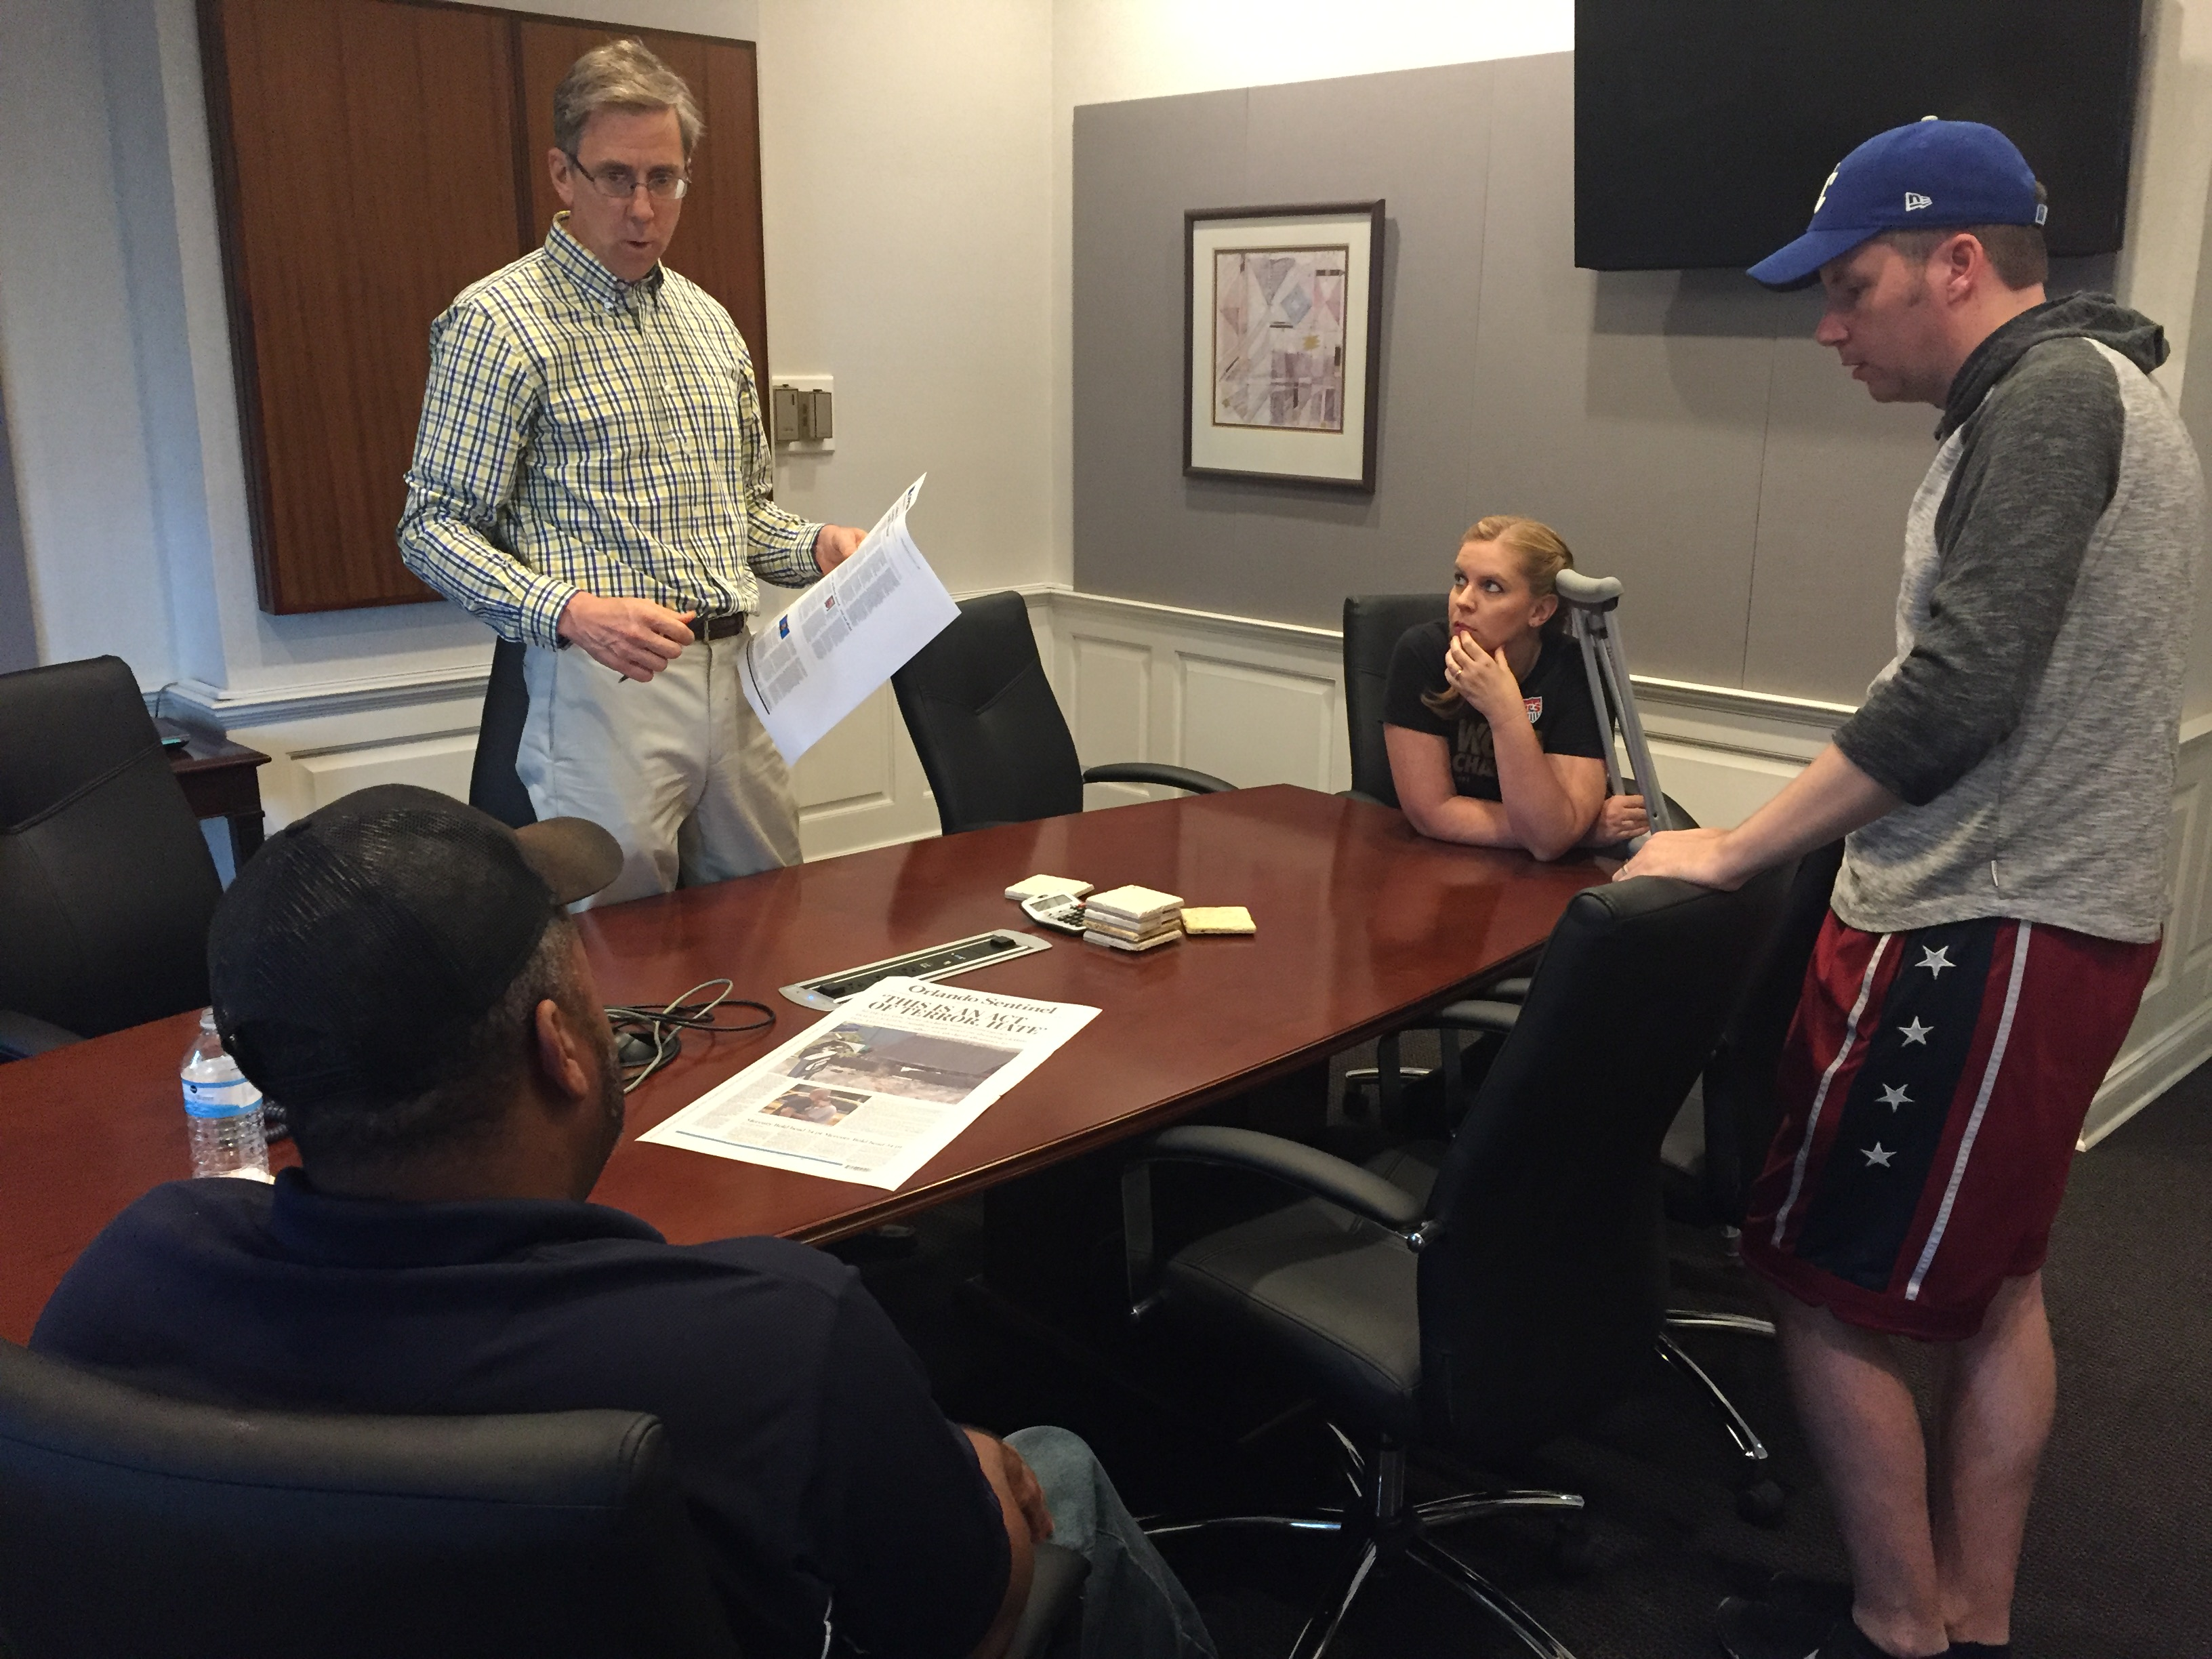 Editors discuss Monday's front page on Sunday. Pictured here, from left, are Avido Khahaifa, editor and publisher, Paul Owens, opinions editor, Cassie Armstrong, photo and video editor, and Todd Stewart, senior editor for multimedia and visuals. (Photo by Kristen Hare/Poynter)